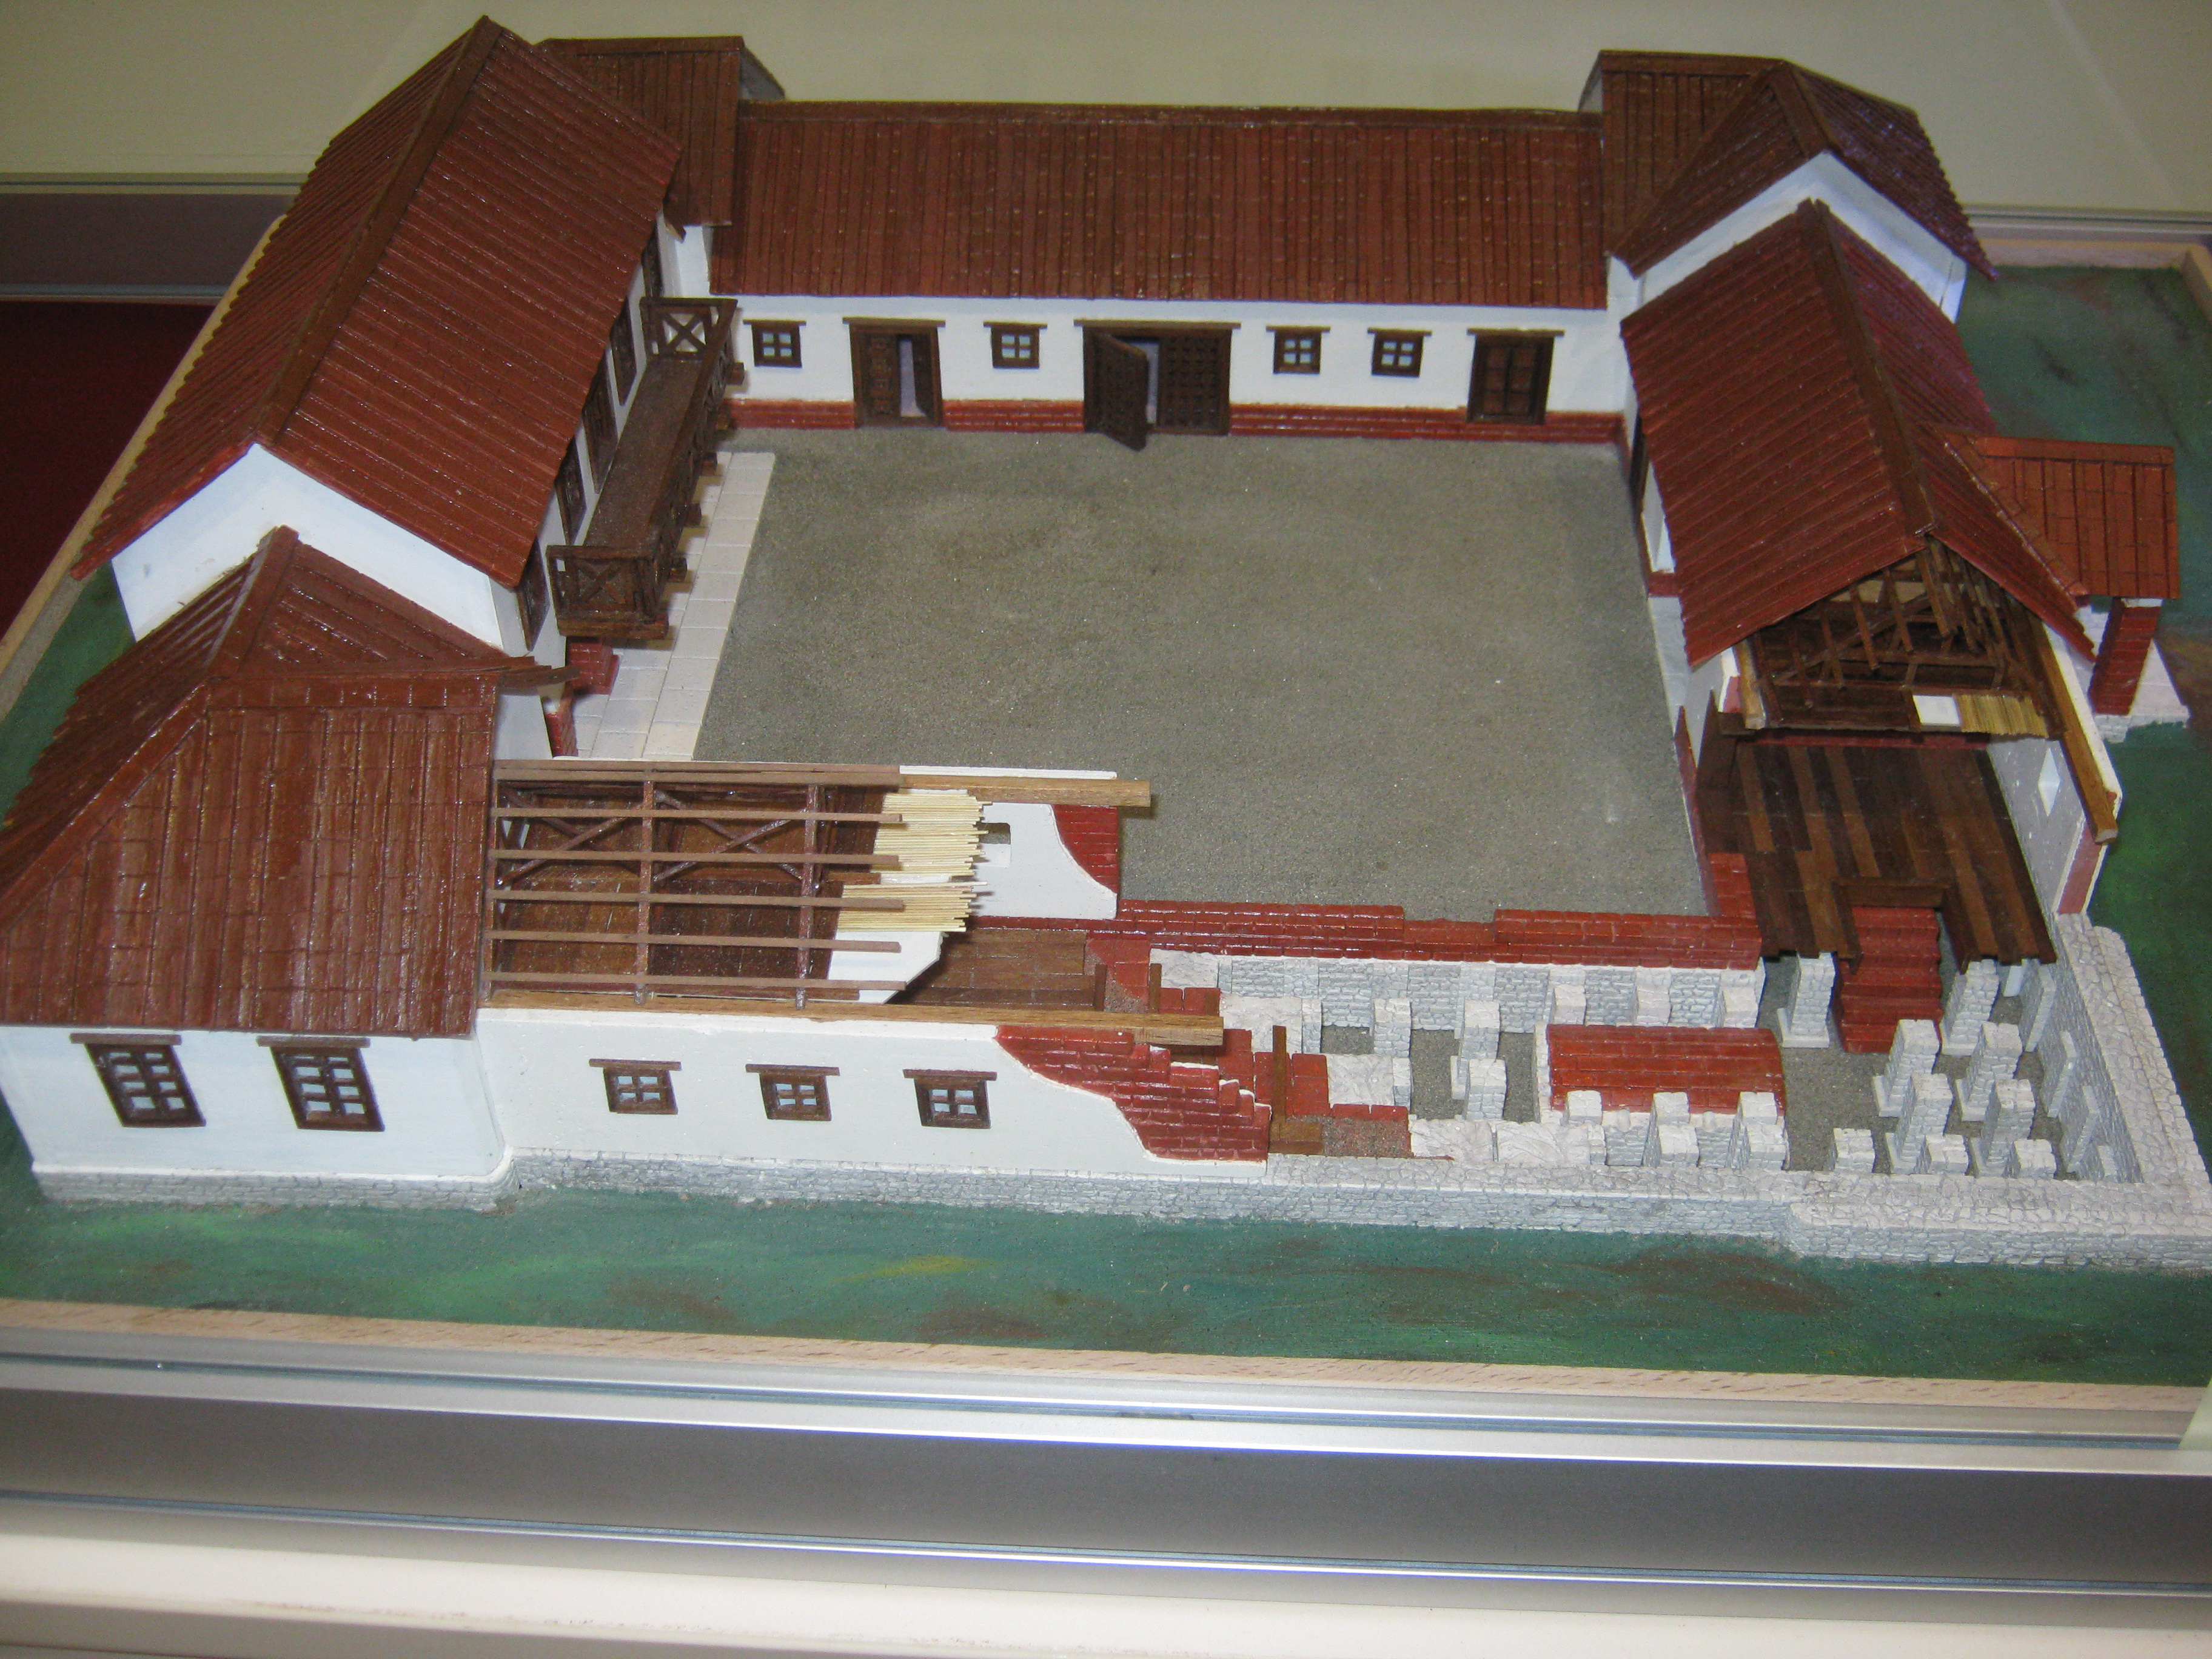 Roman villa - Wikipedia on zombie resistant homes, zombie fortified homes, earthquake proof homes, zombie protected homes, vintage homes, zombie apocalypse evidence, zombie house, bomb proof homes, zombie fortress, zombie home plans, hurricane proof homes,